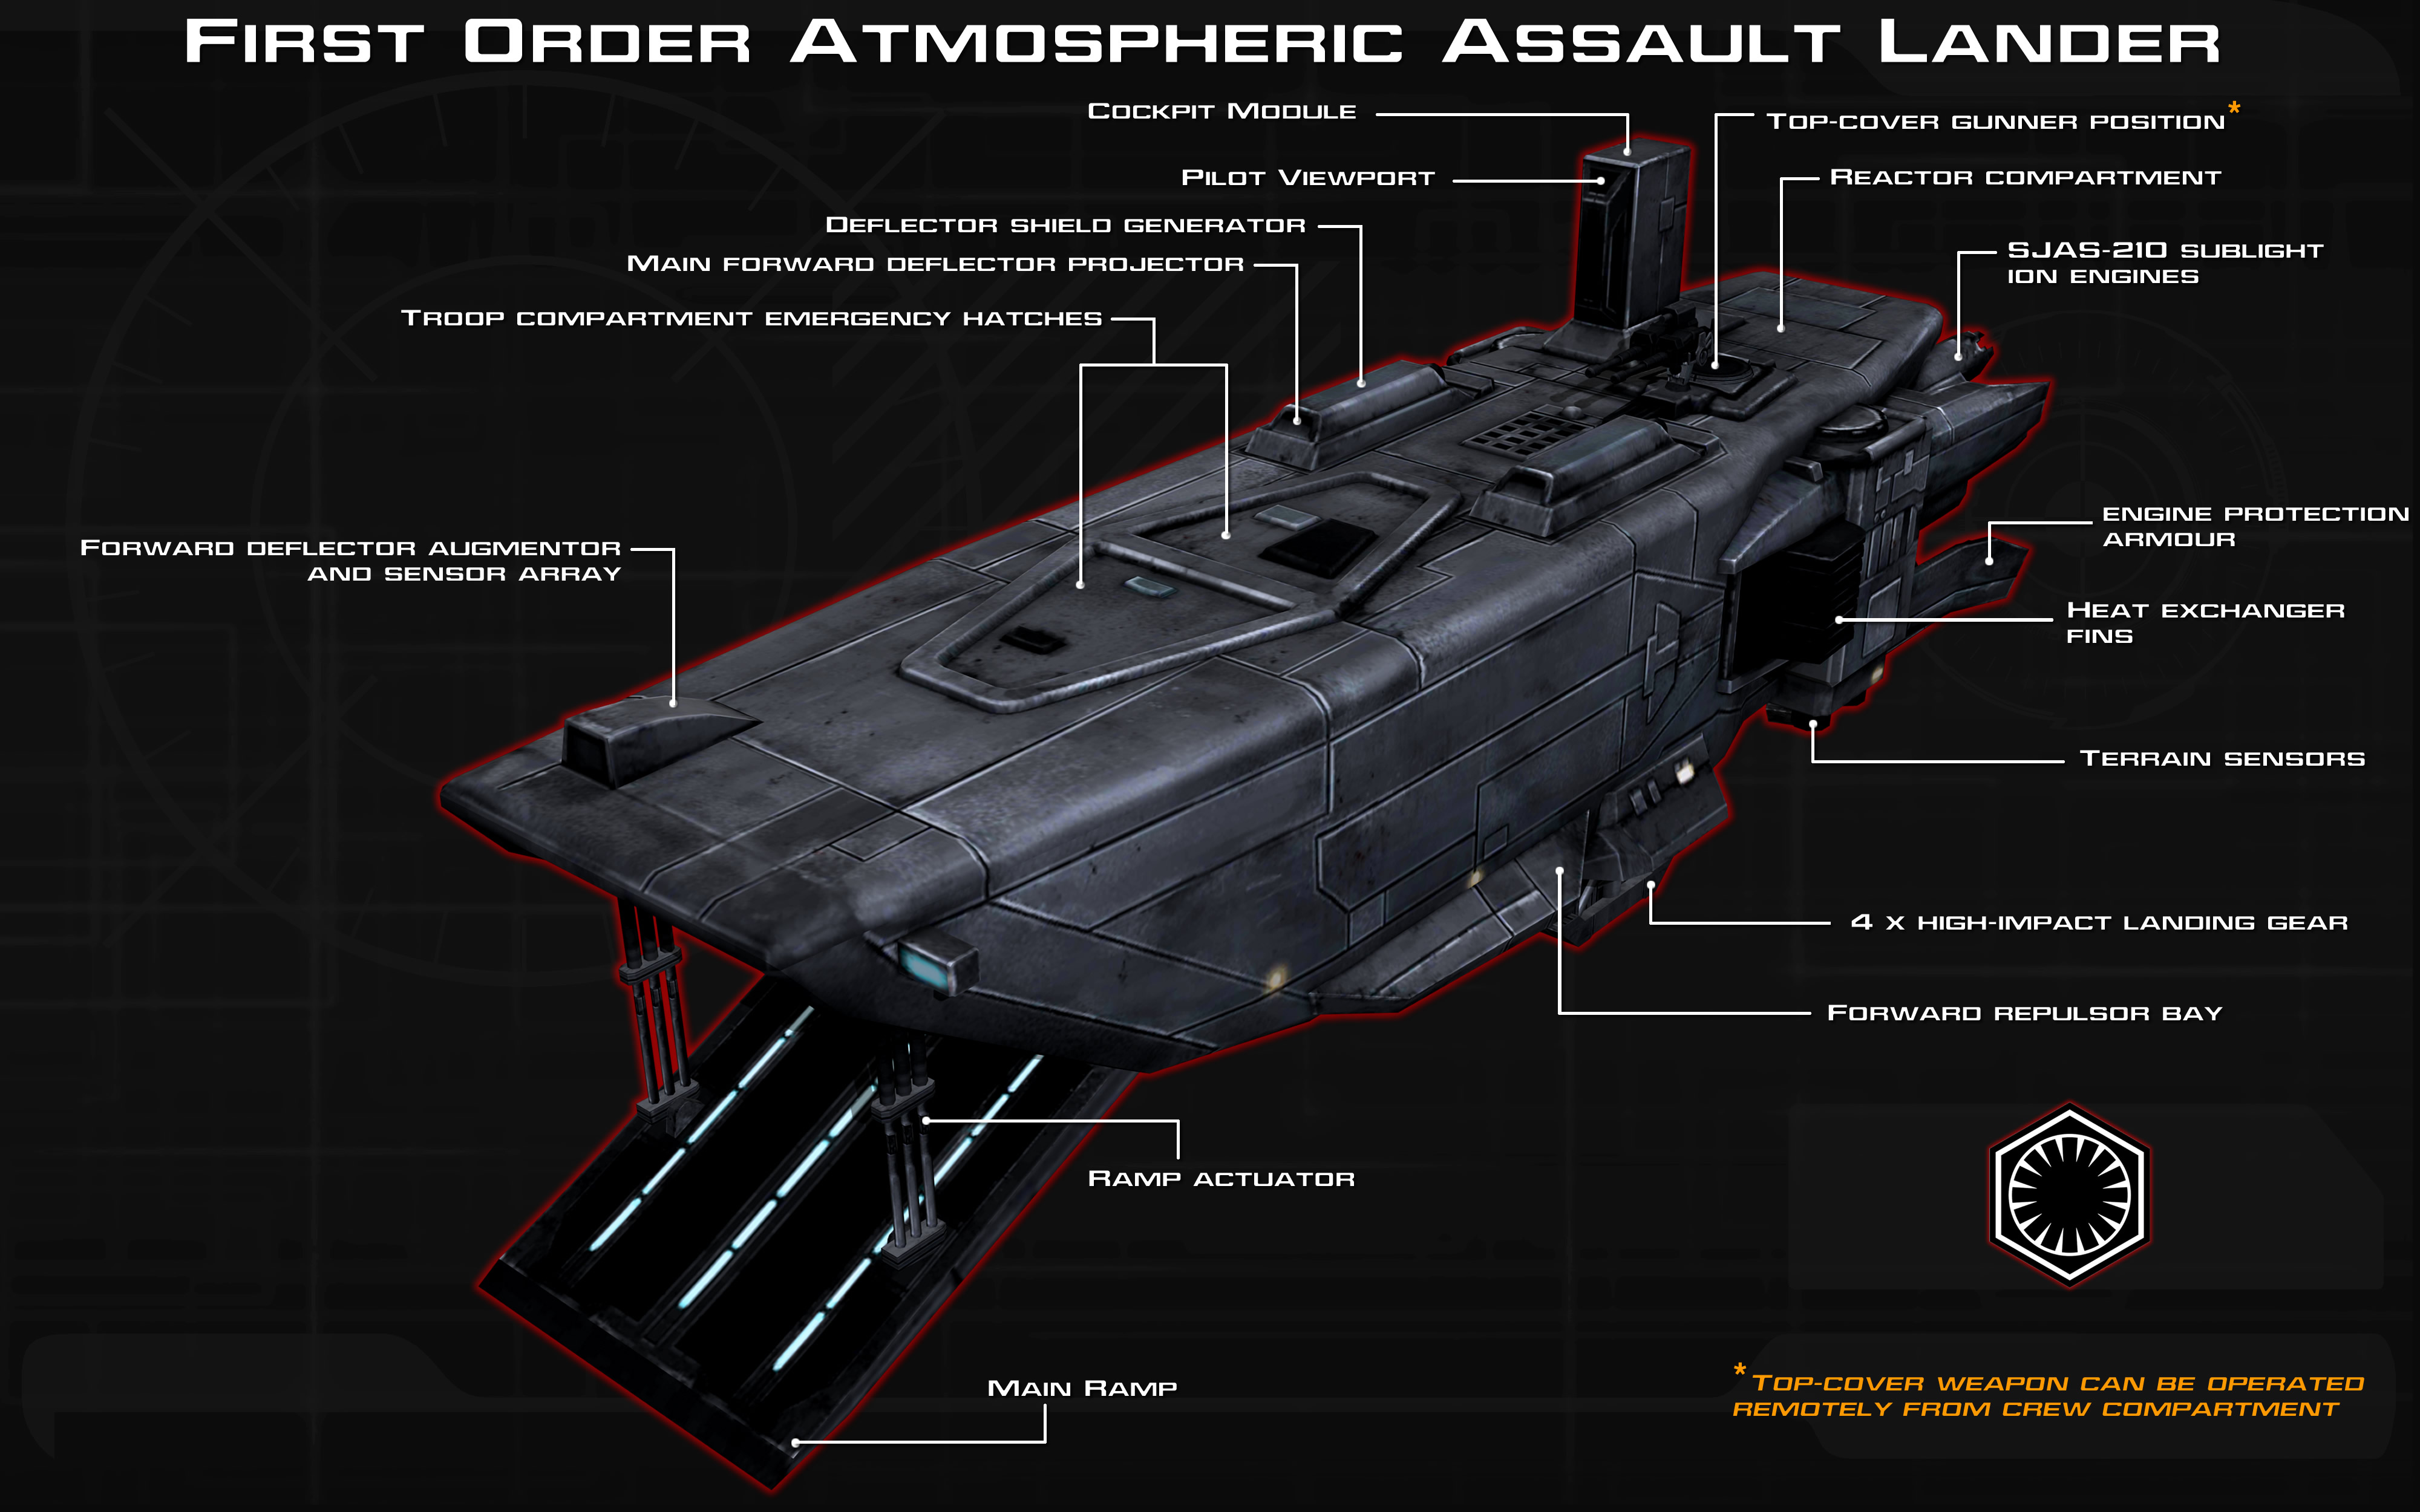 Atmospheric Assault Lander tech readout [New] by unusualsuspex